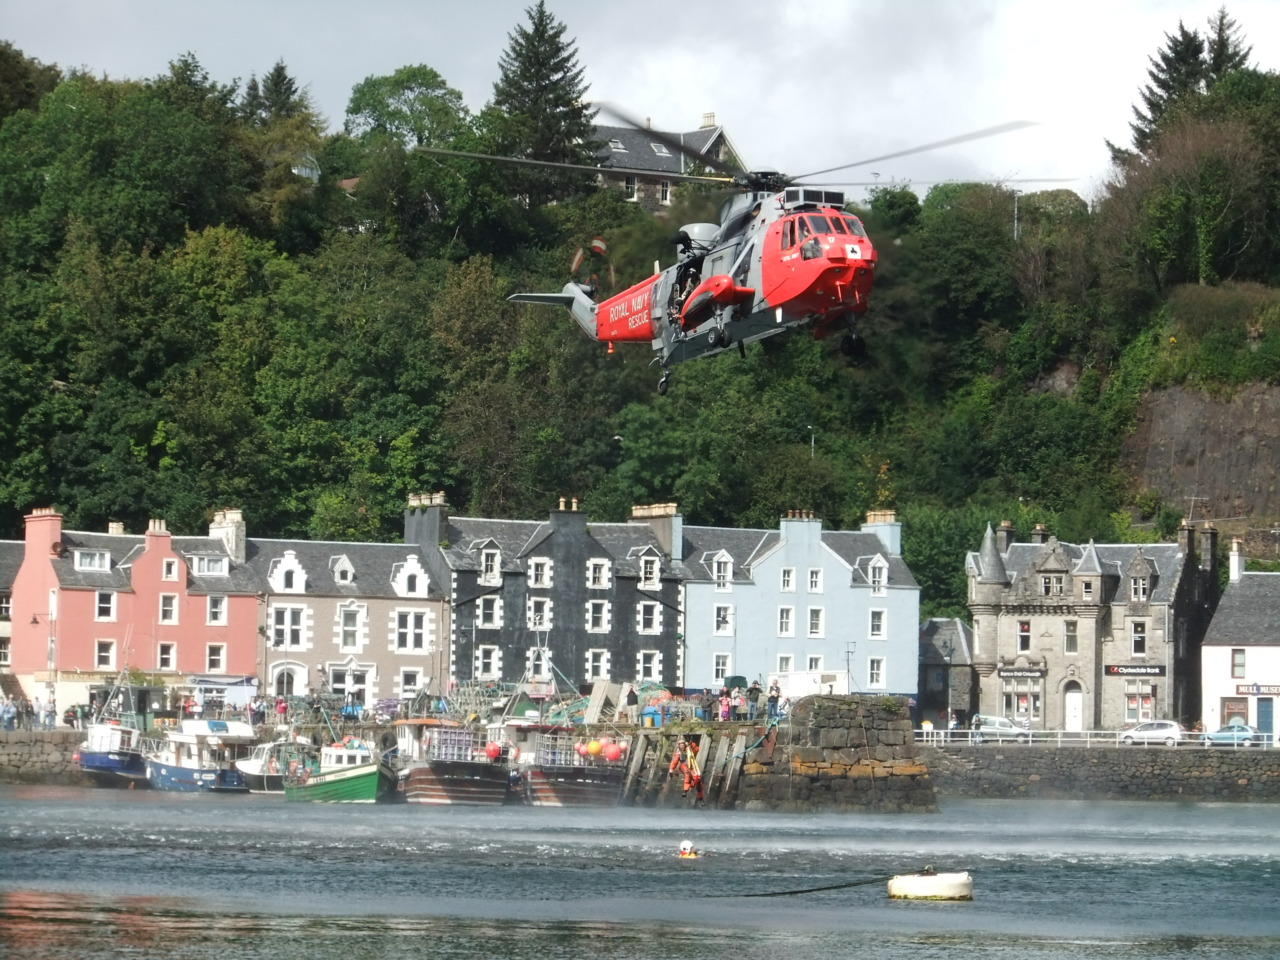 Taken by Liana Cripps Lifeboat day in Tobermory